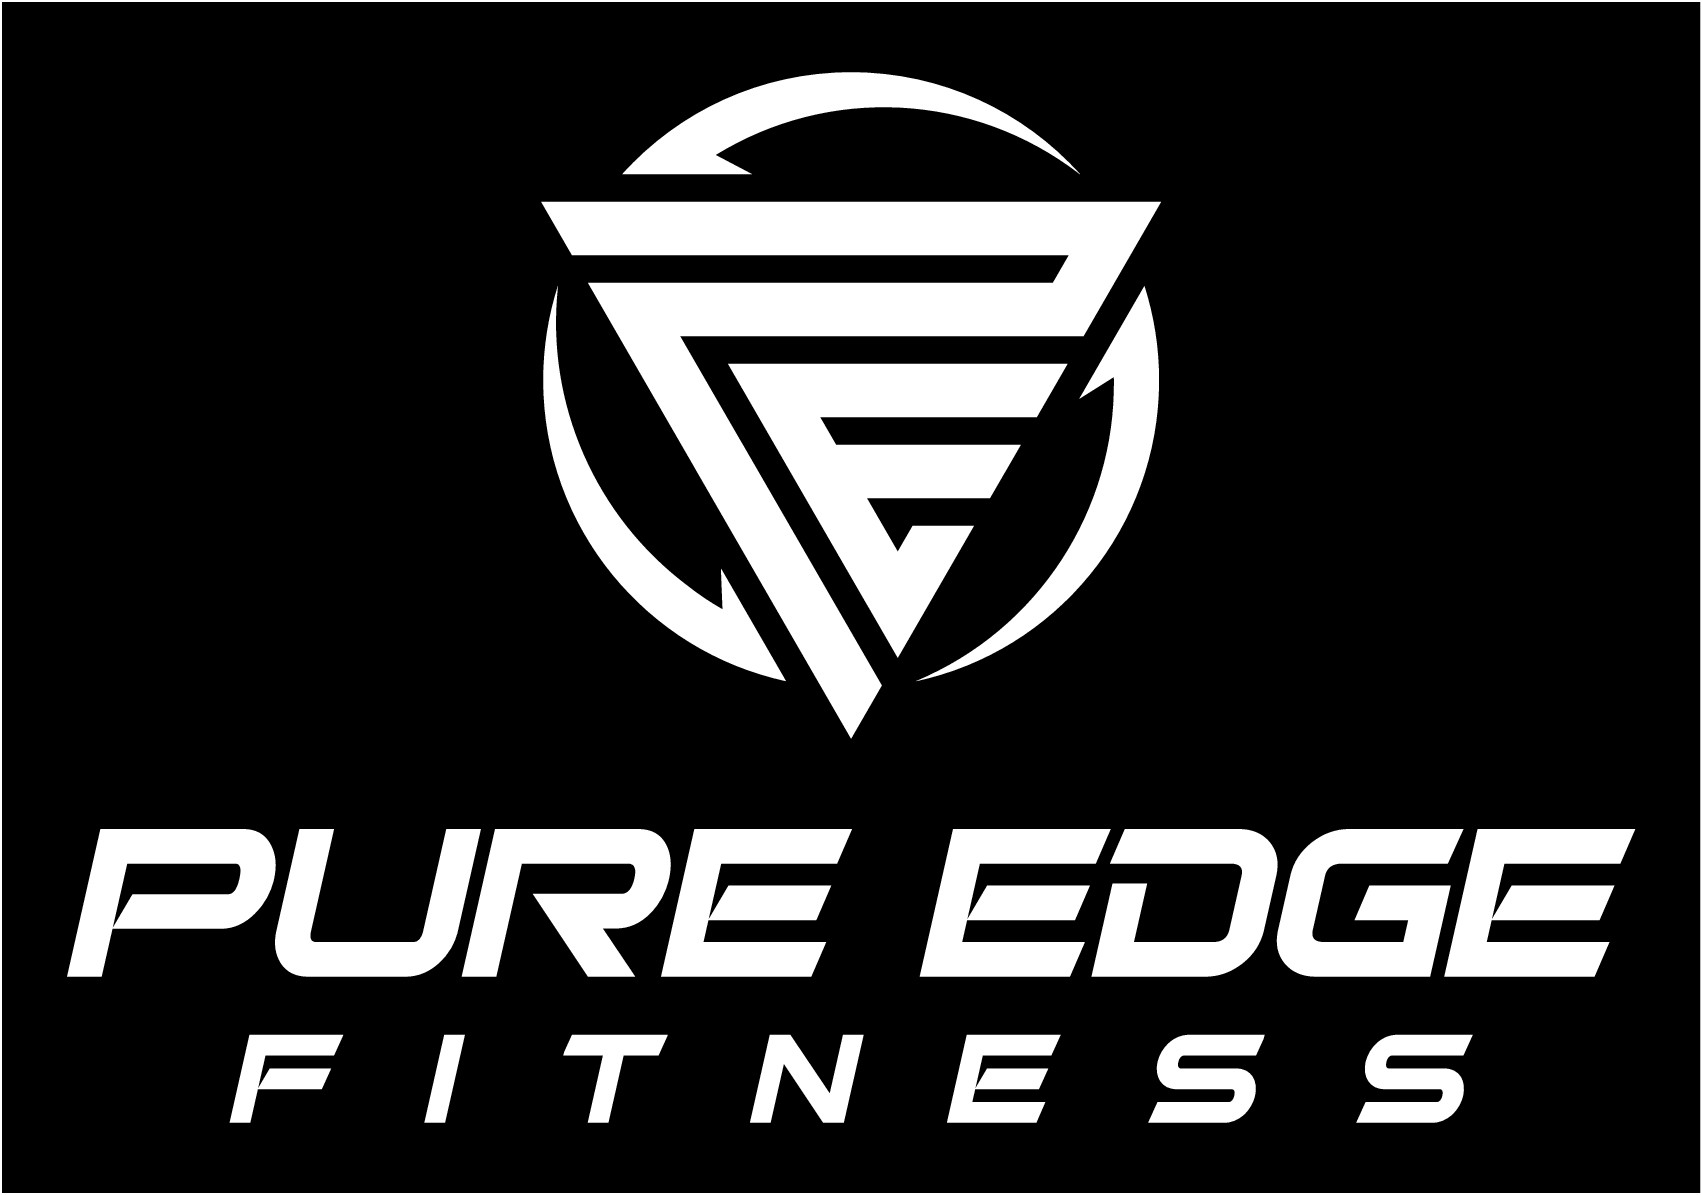 FITNESS LOGO - EXAMPLE PROVIDED BUT OPEN TO CREATIVE IDEAS :)